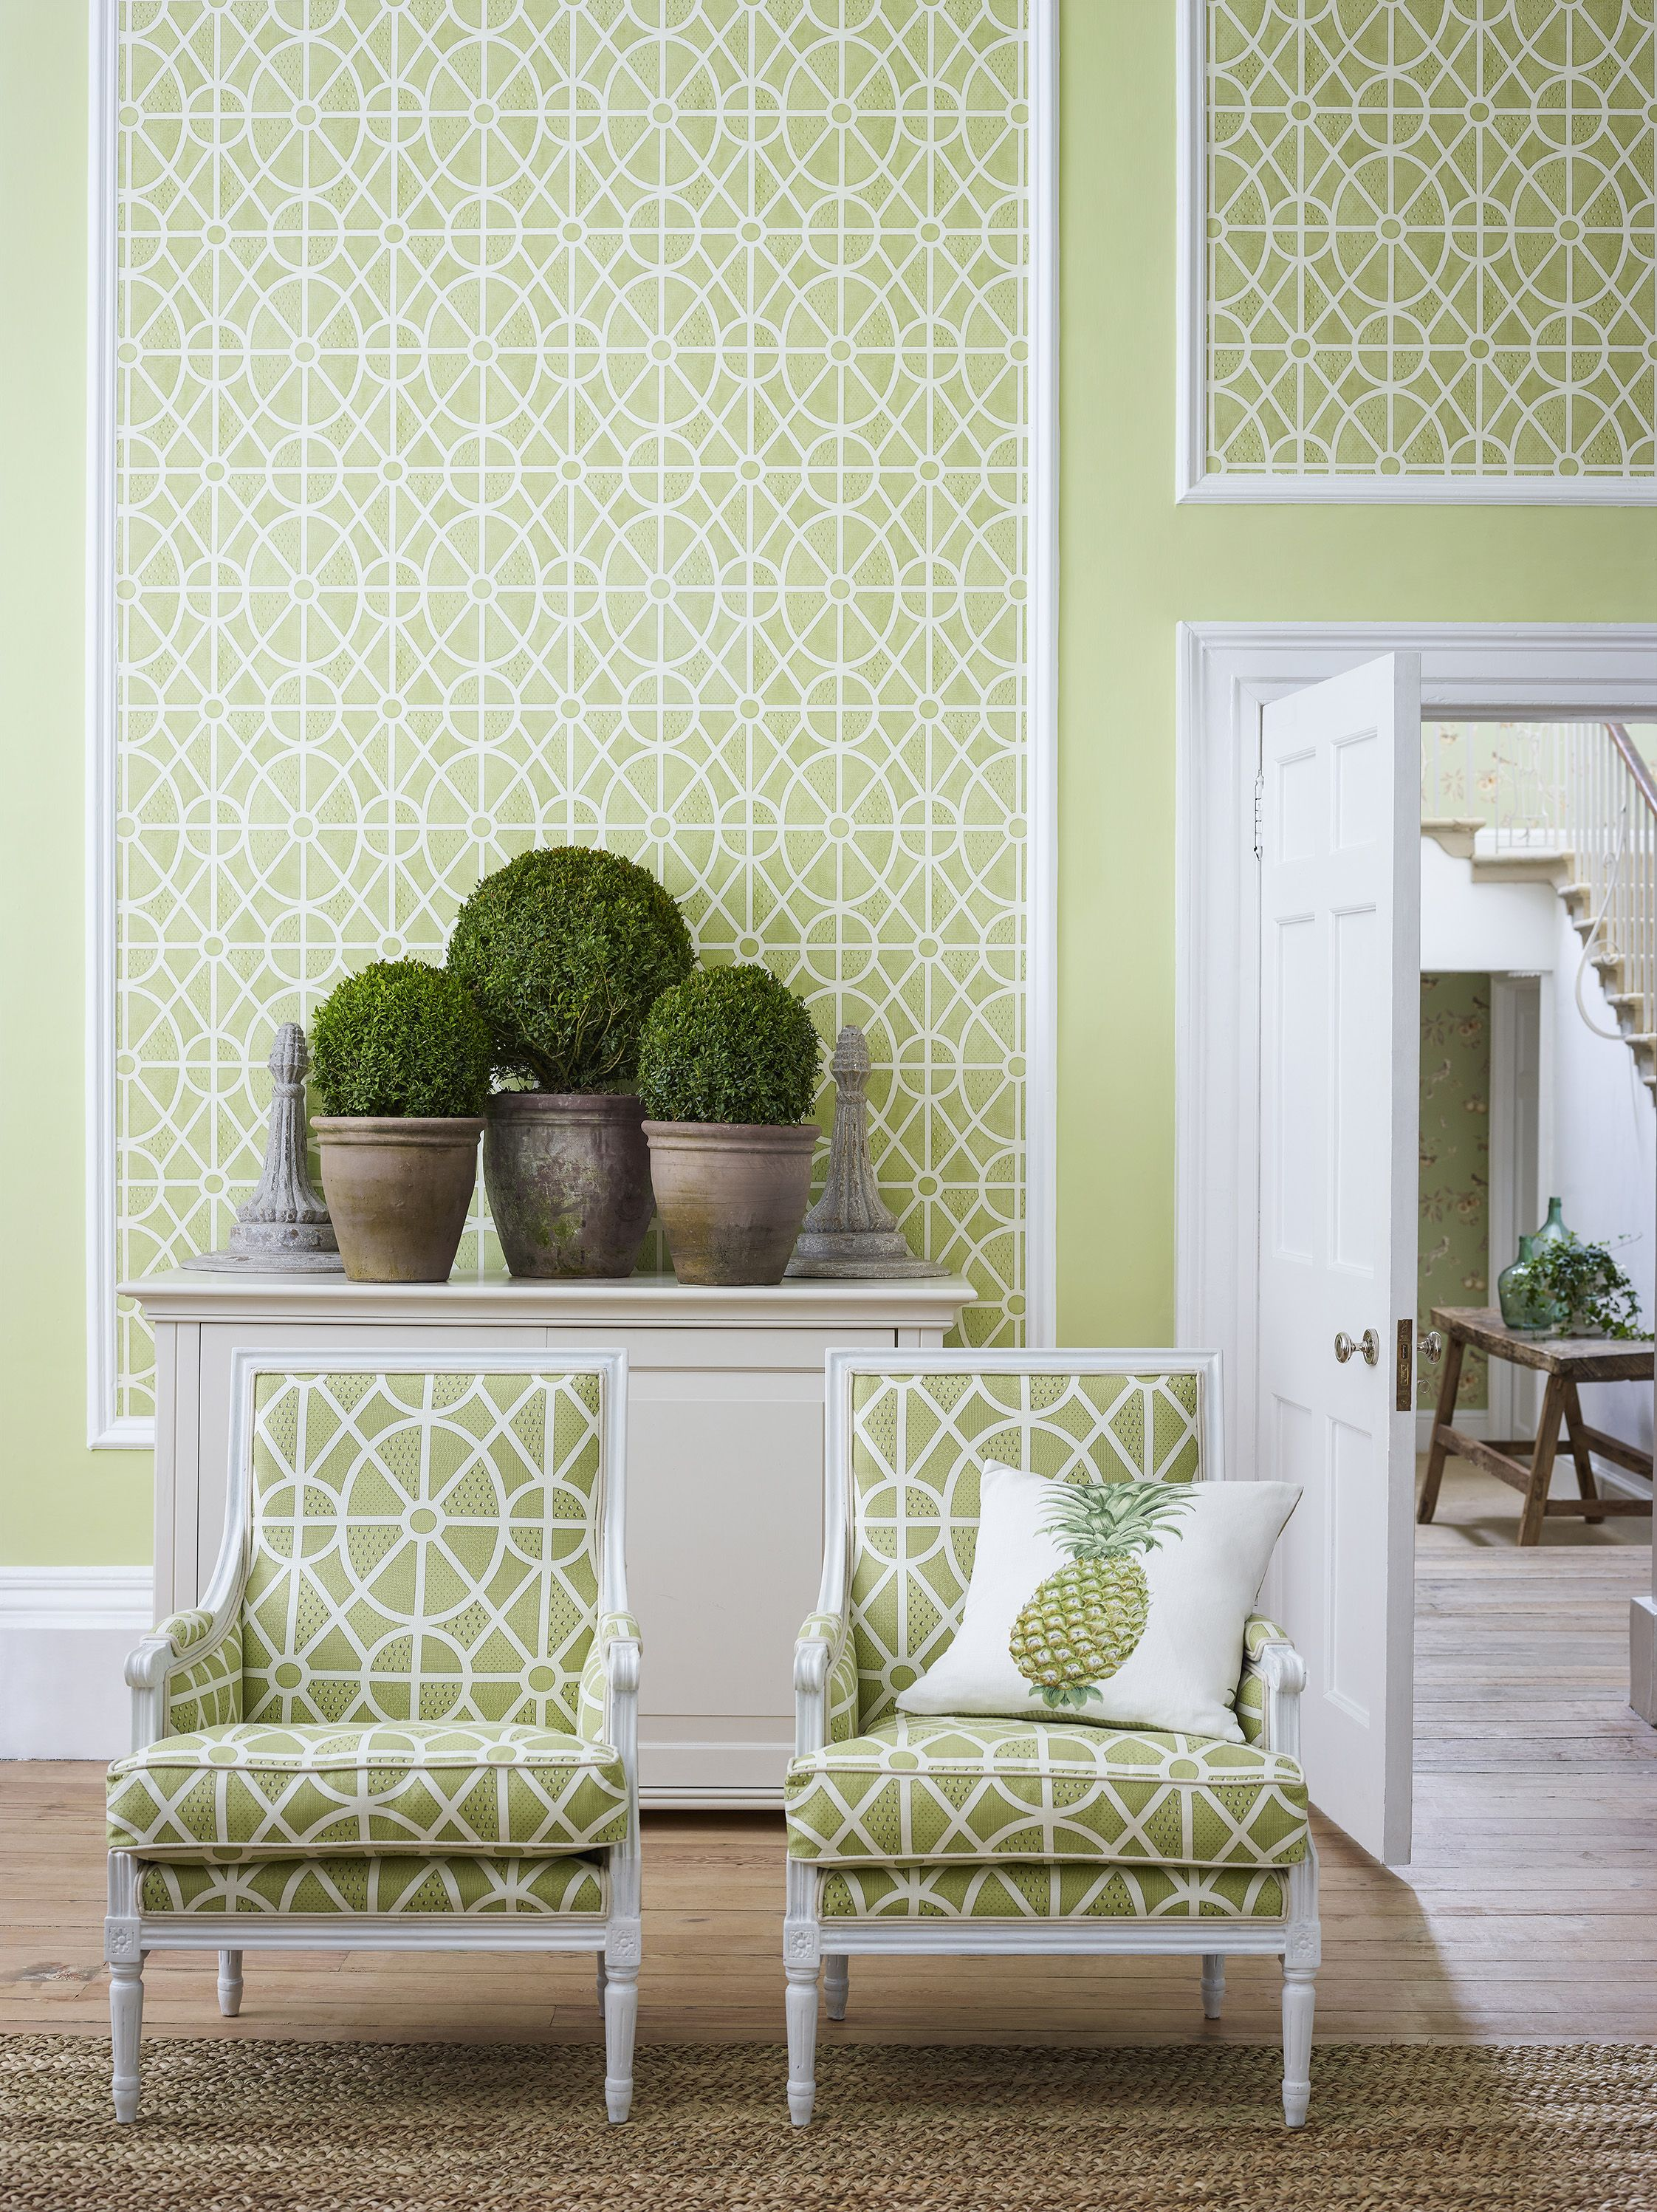 Wallpaper Designs For Living Room: Beautiful Matching Green Wallpaper And Fabrics, Available